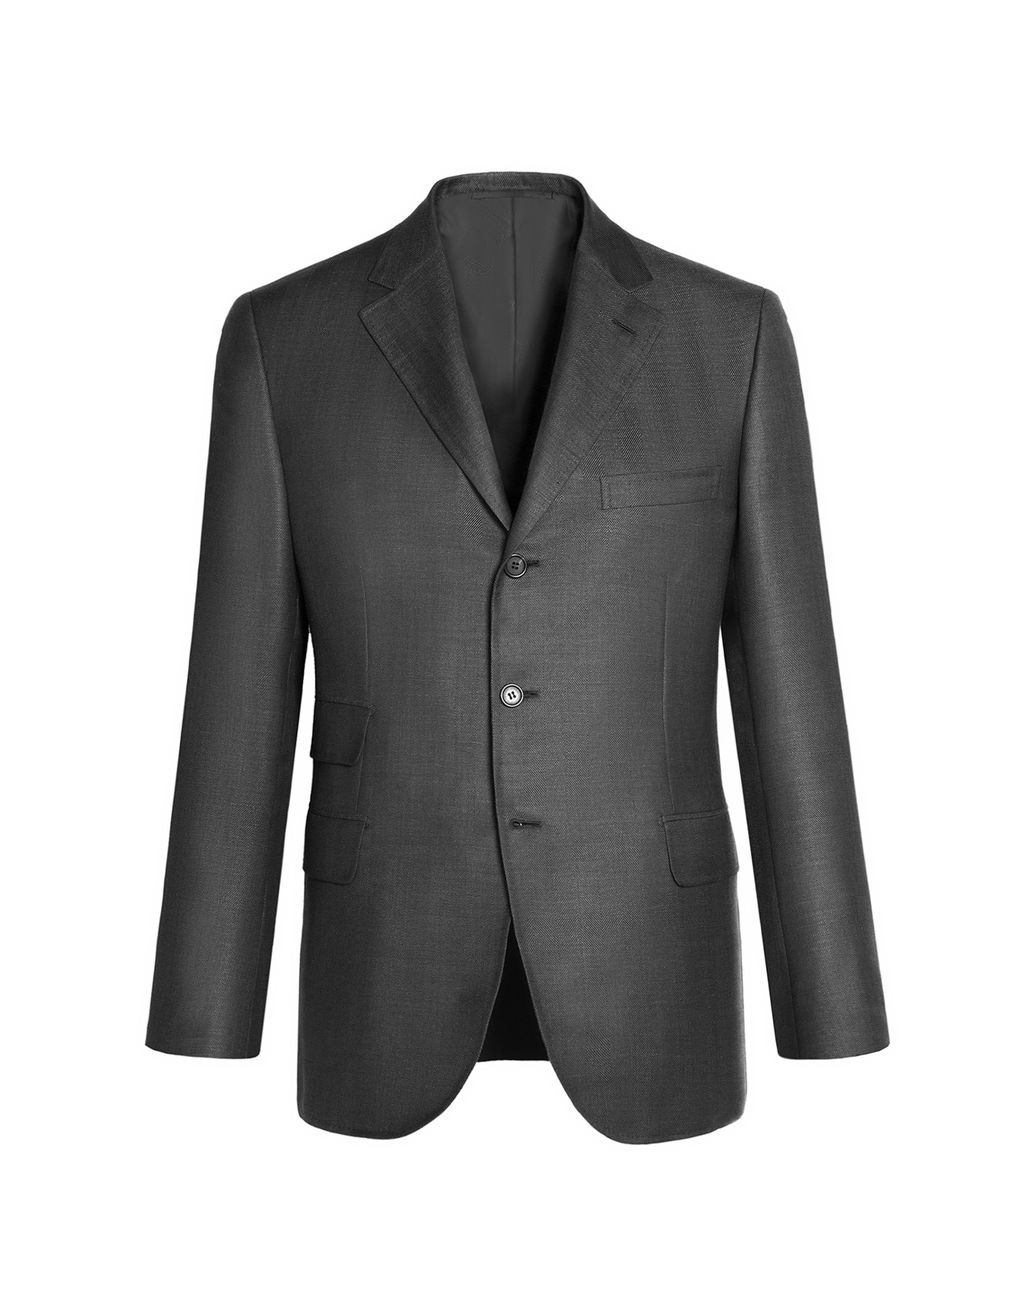 BRIONI Grey Herringbone Jacket Jackets Man f